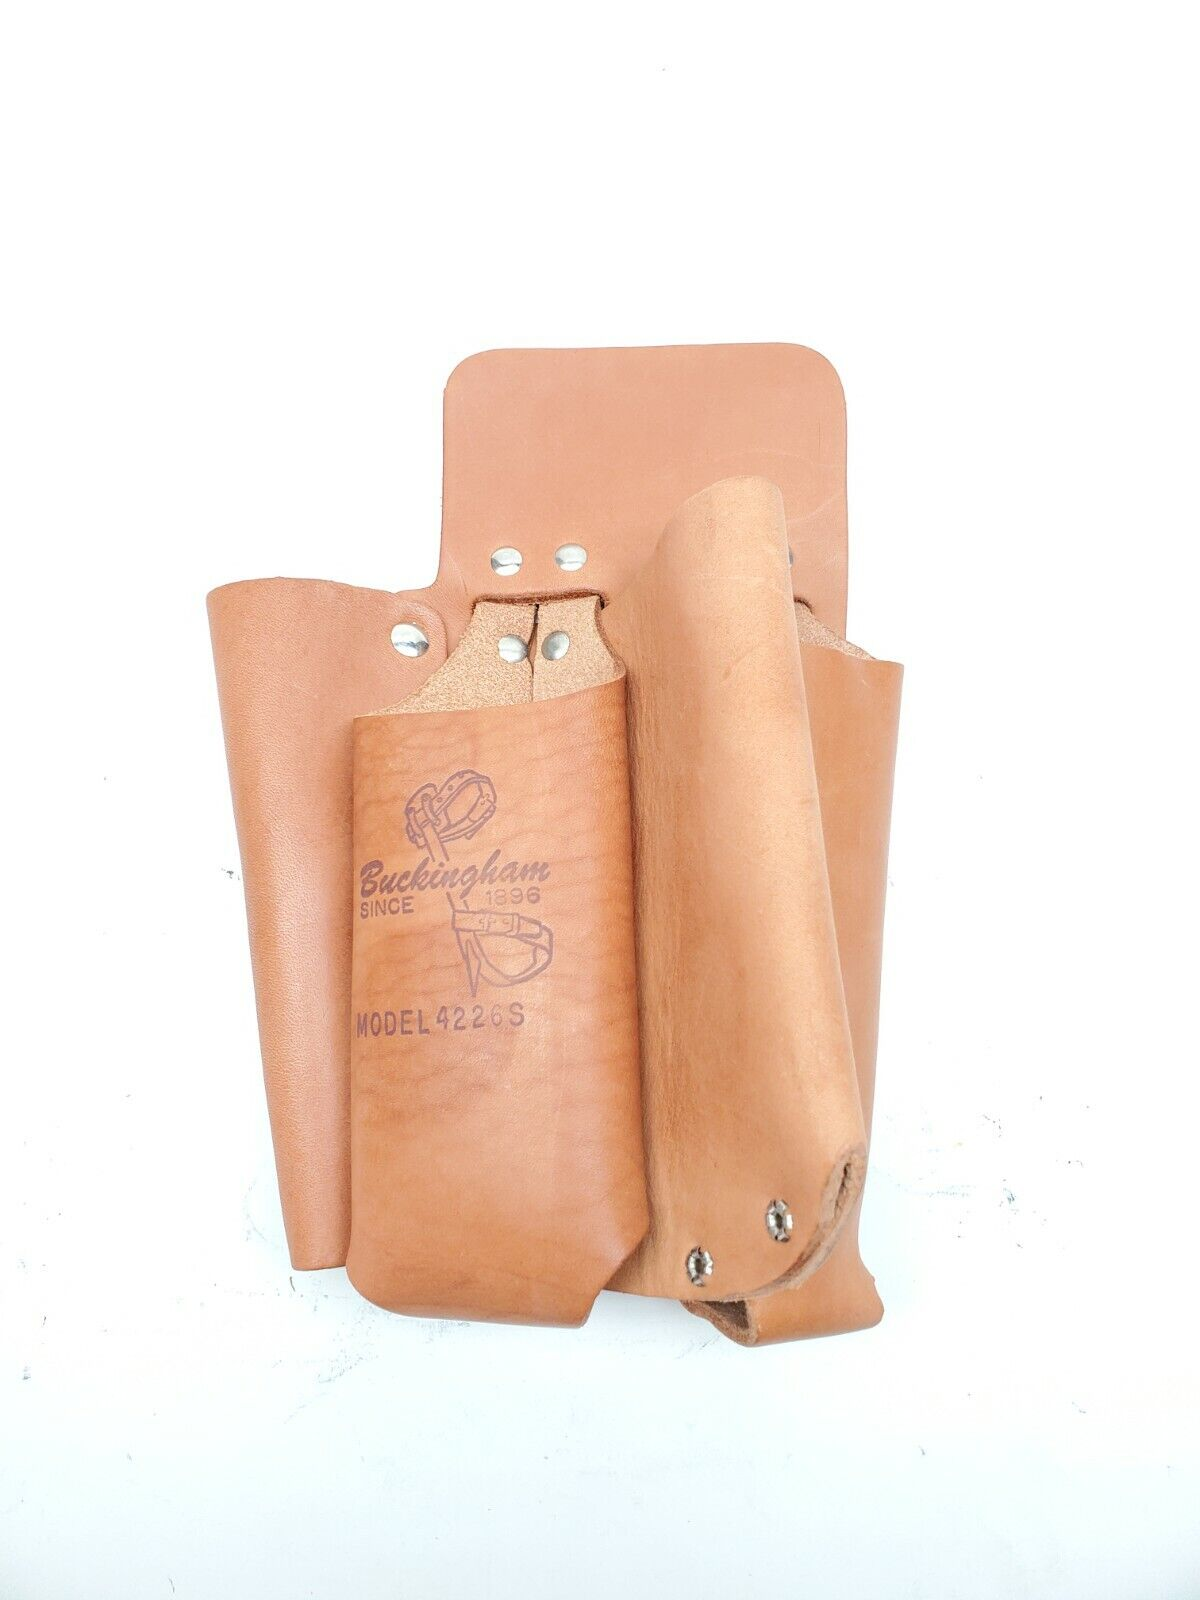 Buckingham Linemans Leather Tool Pouch 4 Pouch Tool Bag